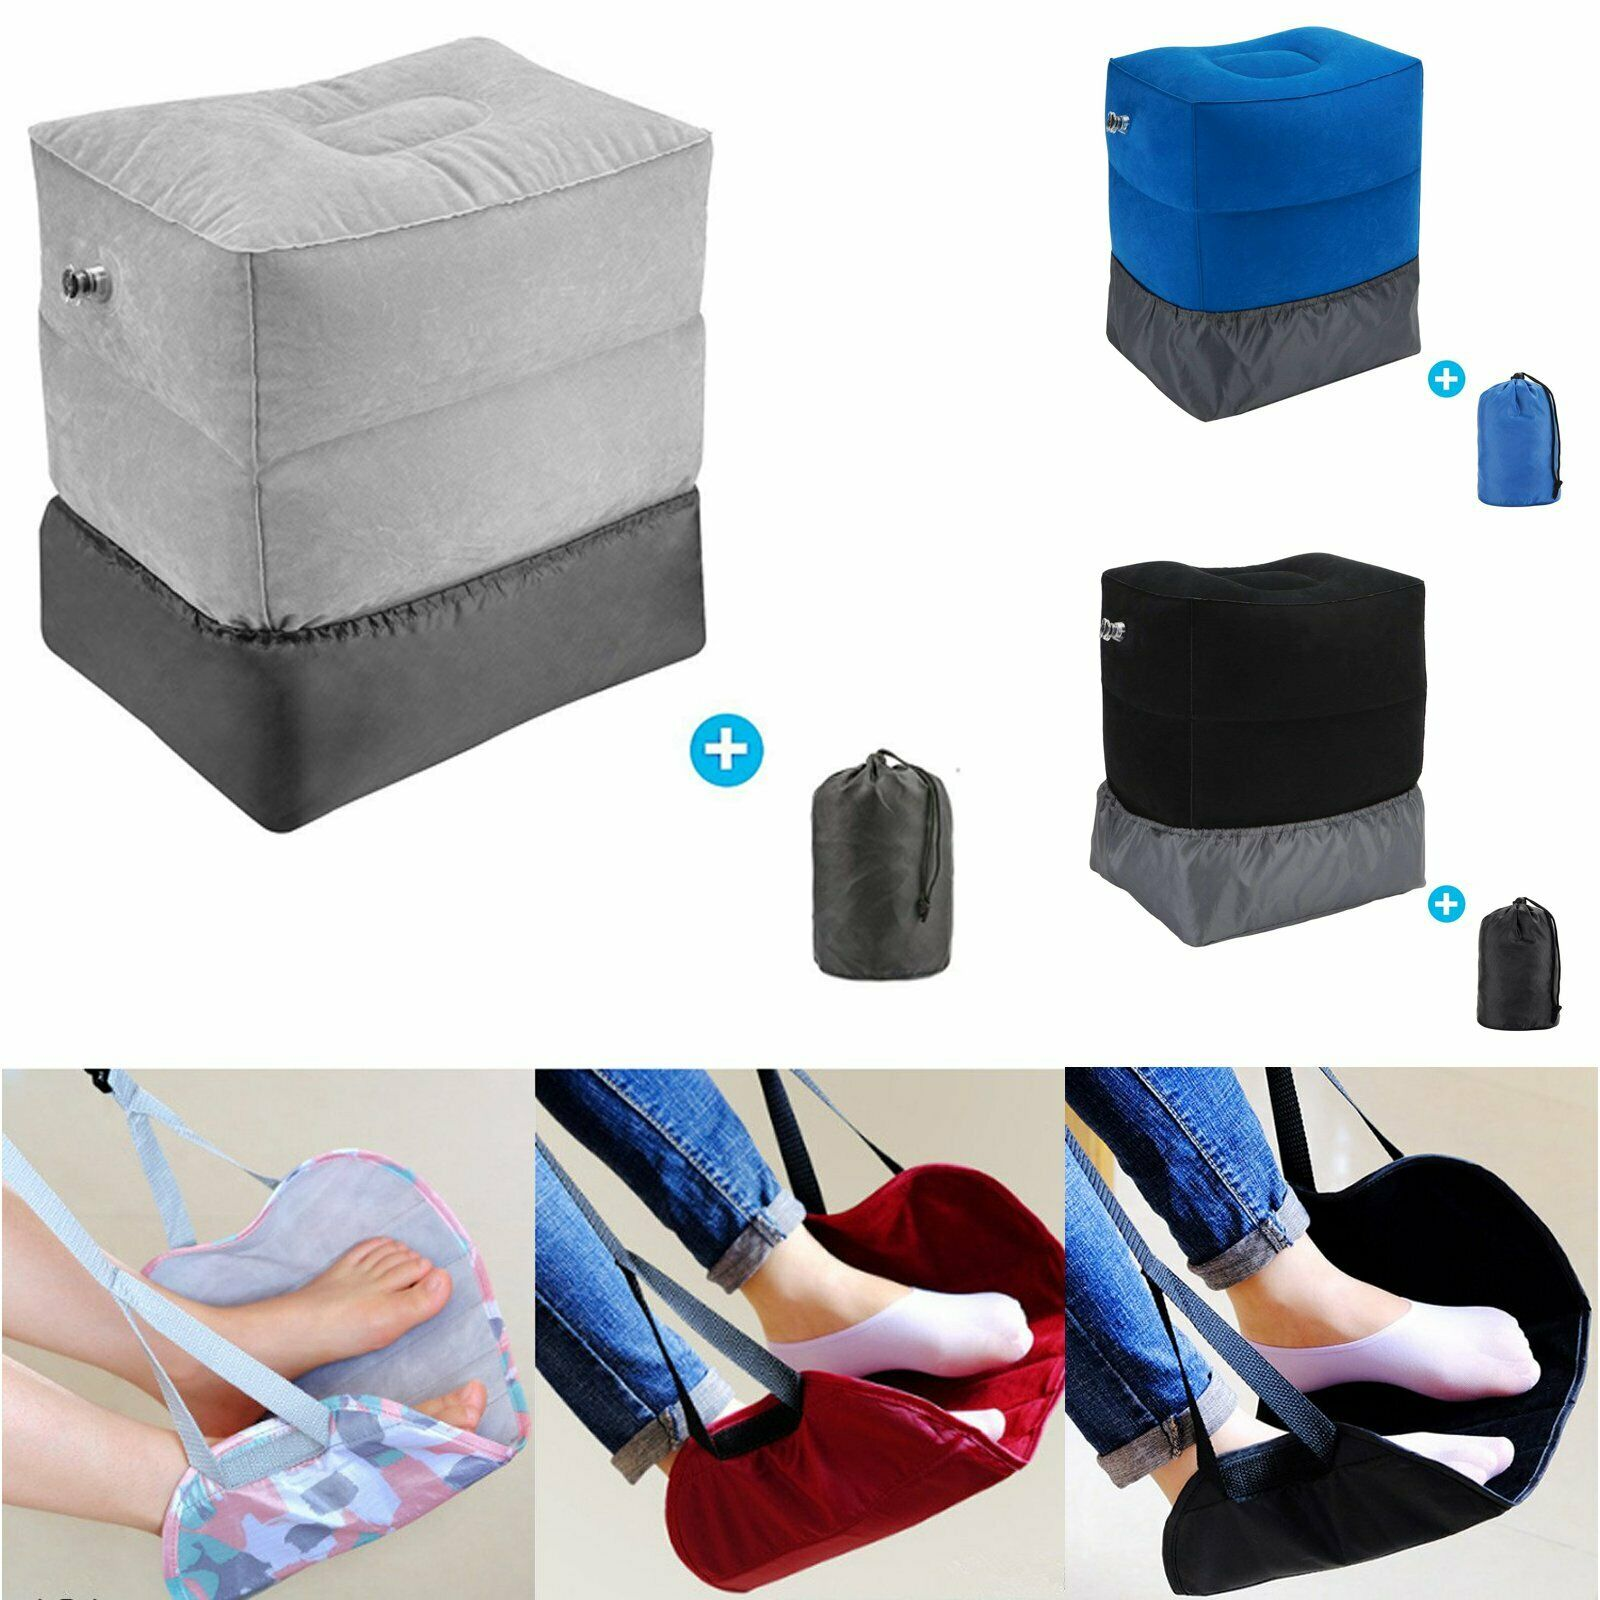 Travel Footrest Inflatable Hammock Plane Train Leg Foot Rest Pad Pillo...